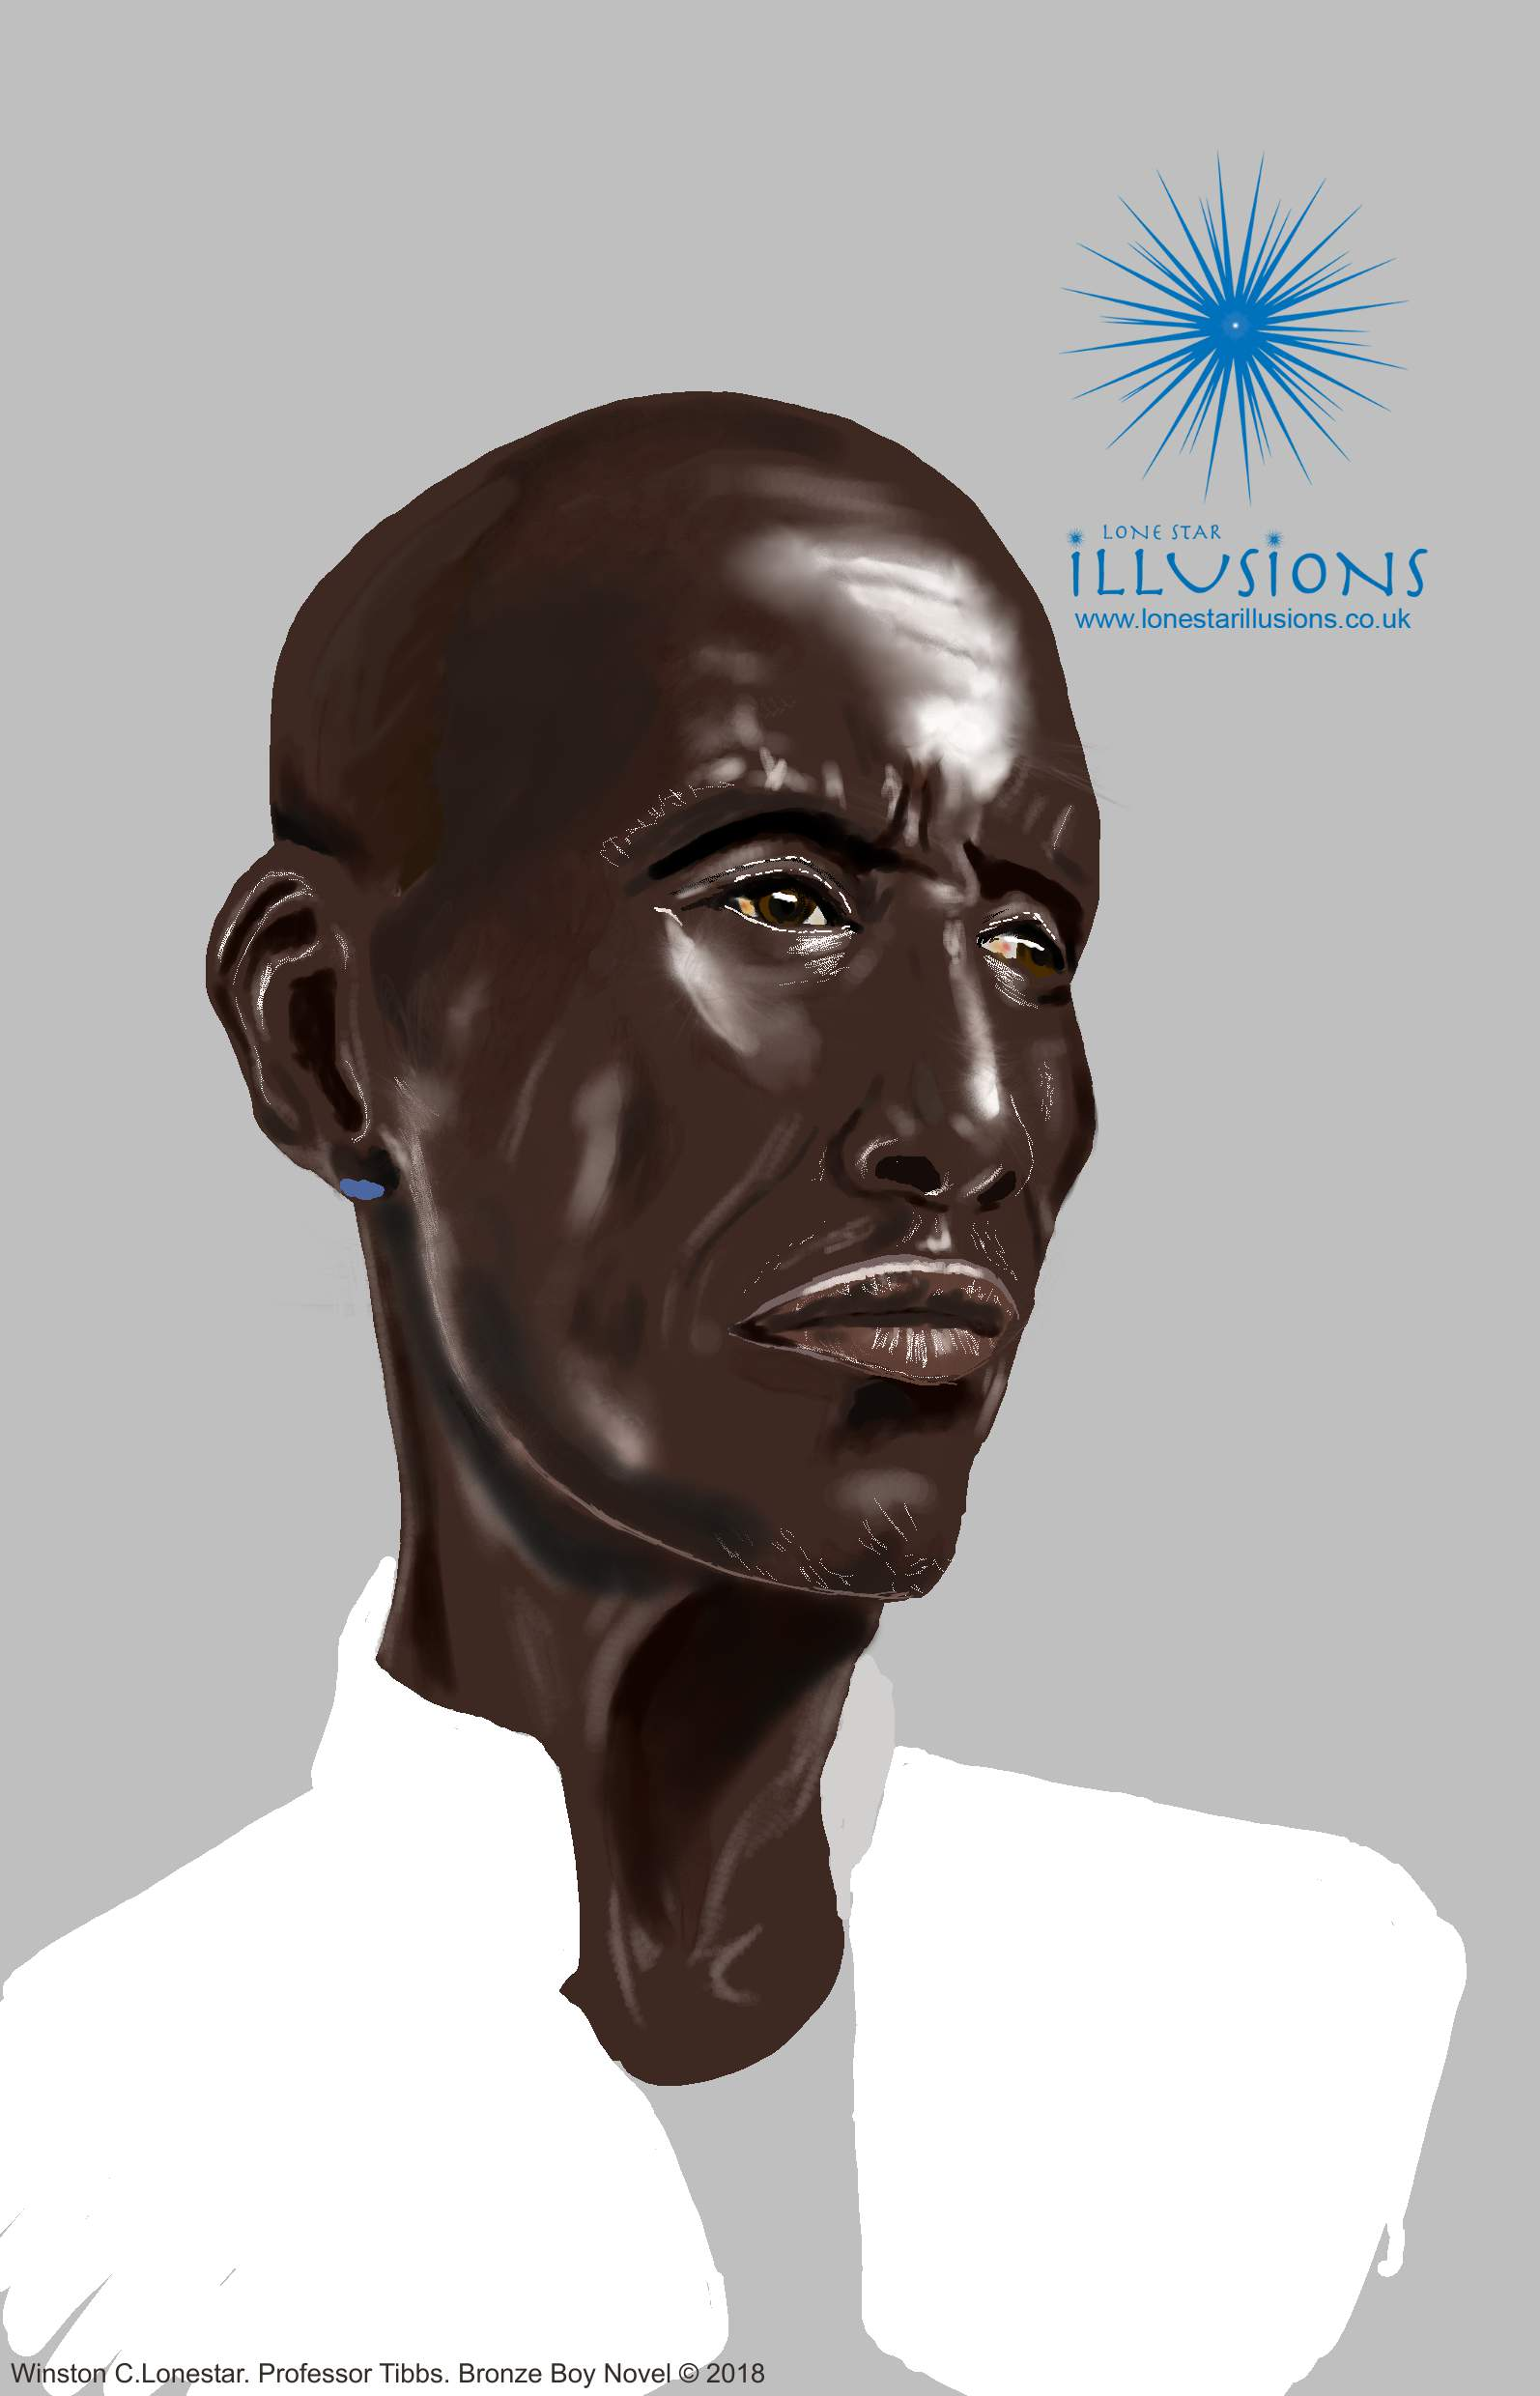 concept art, digital illustration, digital art, black art, black illustration, african elder, positive black images, graphic novel concepts, African art